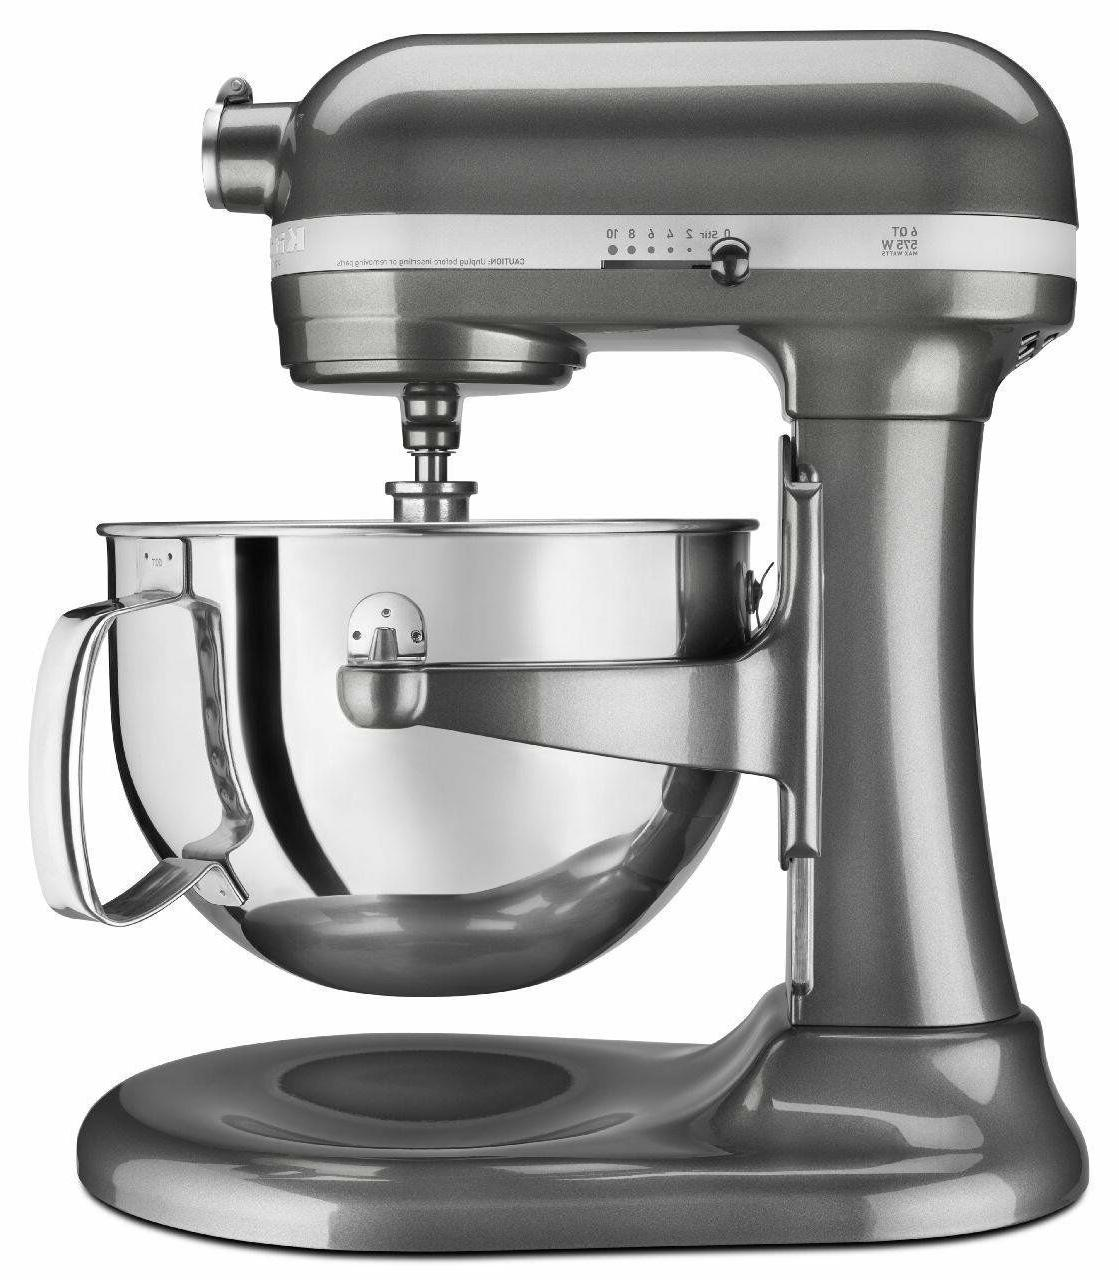 600 stand mixer